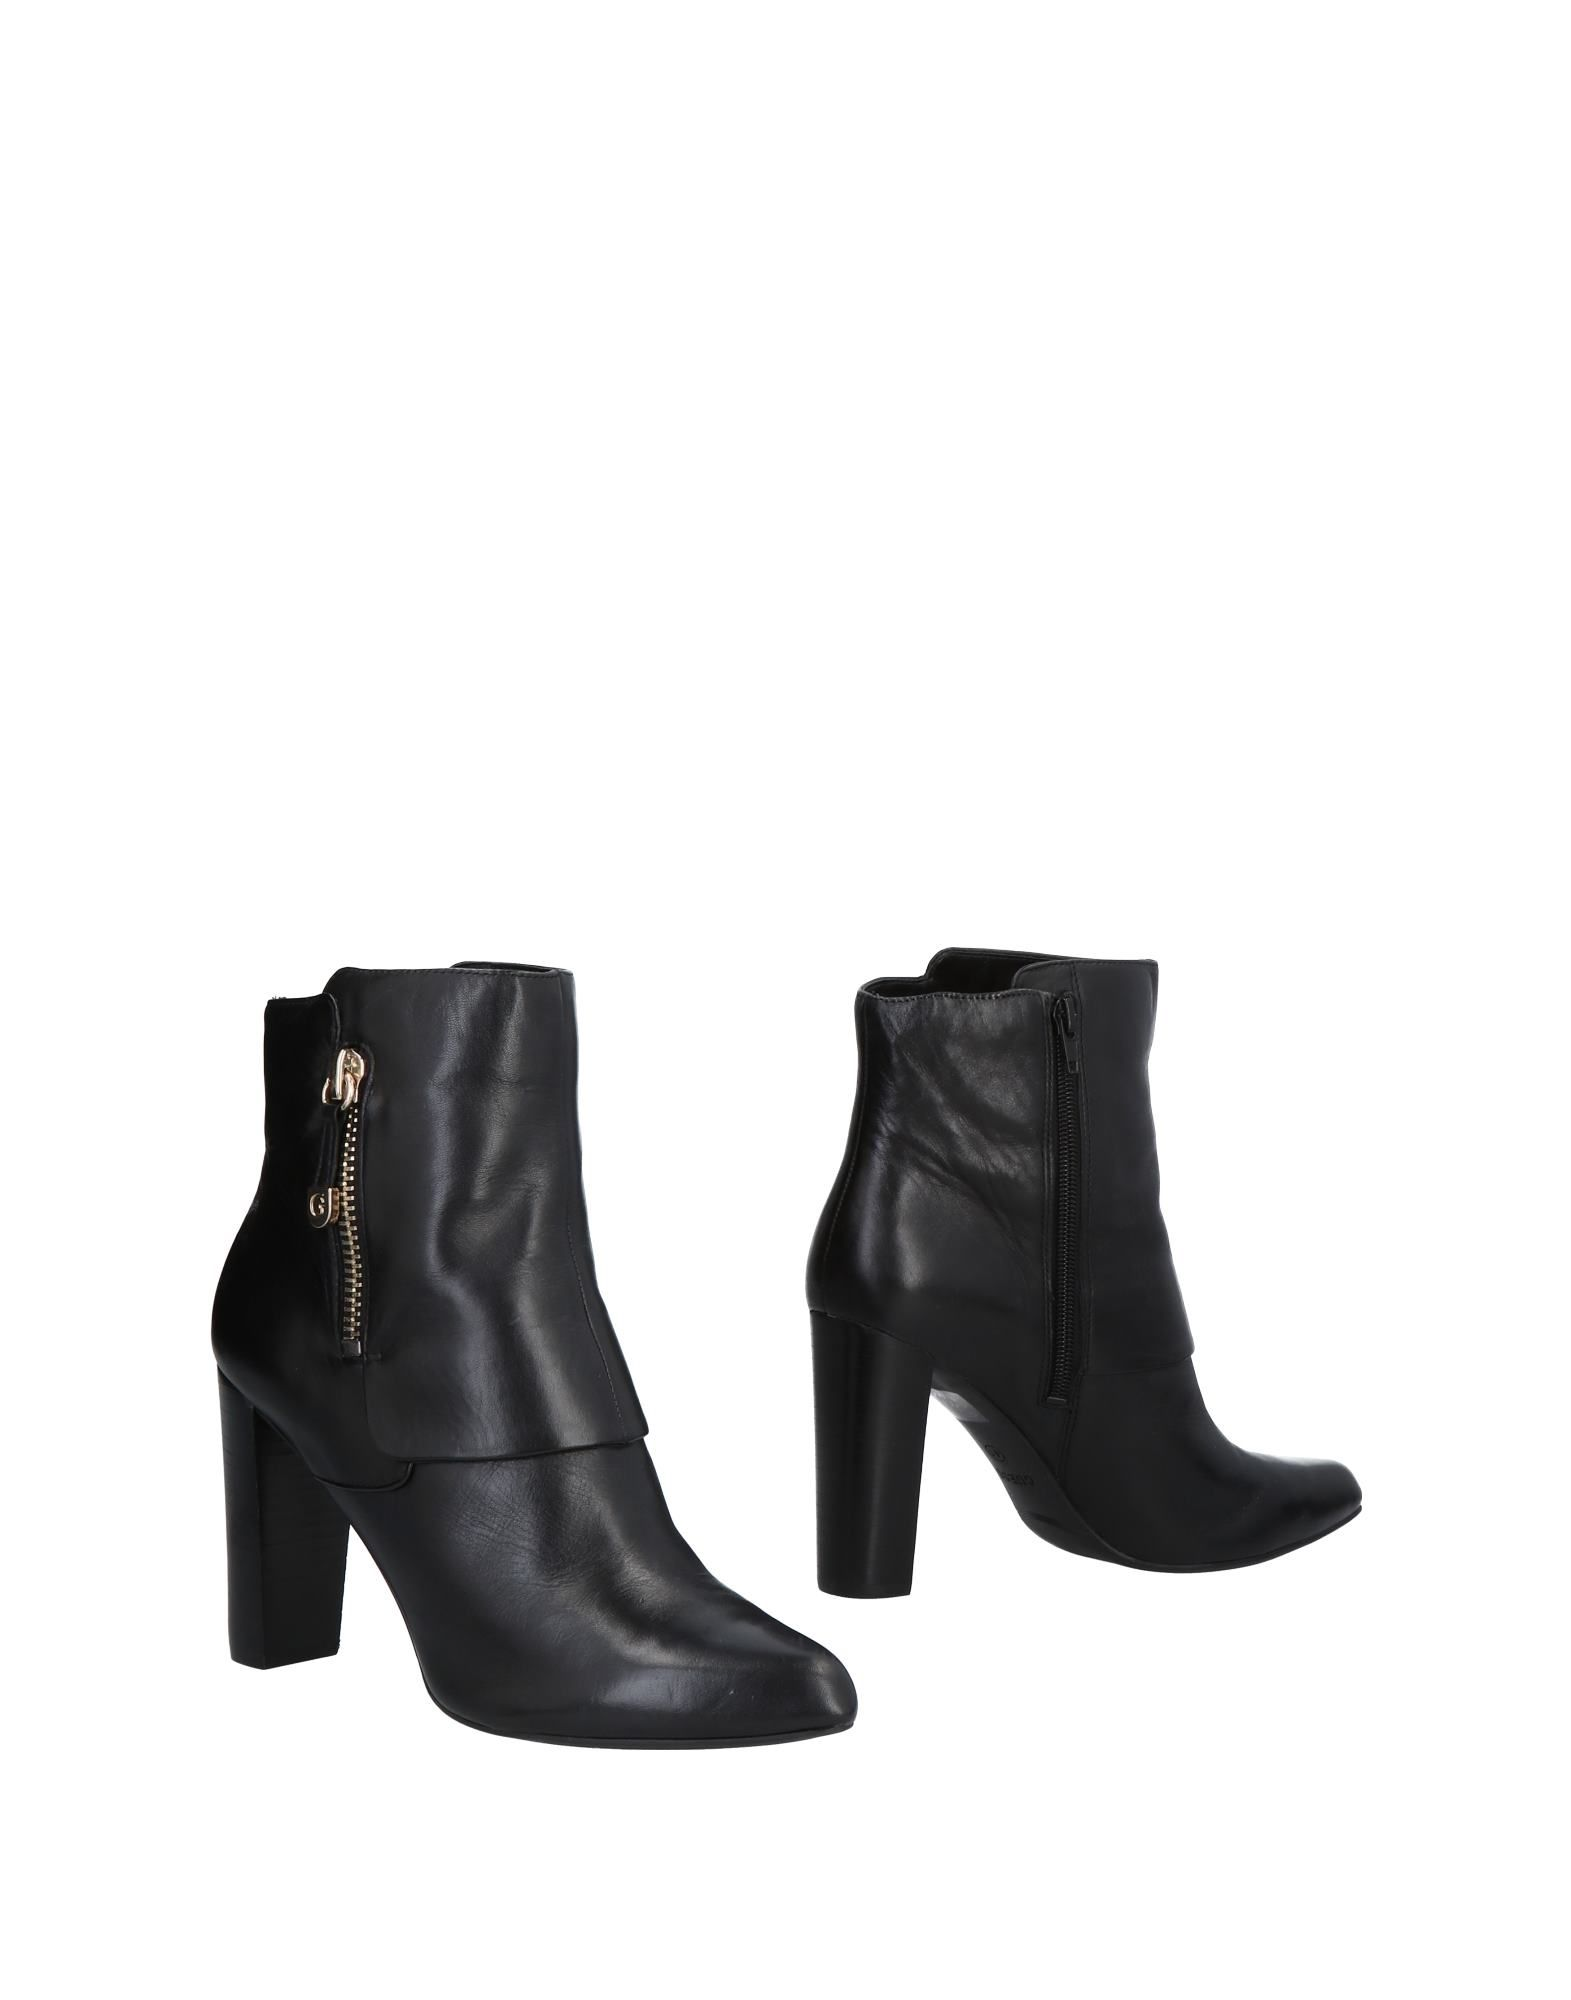 Guess Stiefelette Damen  11492990NJ